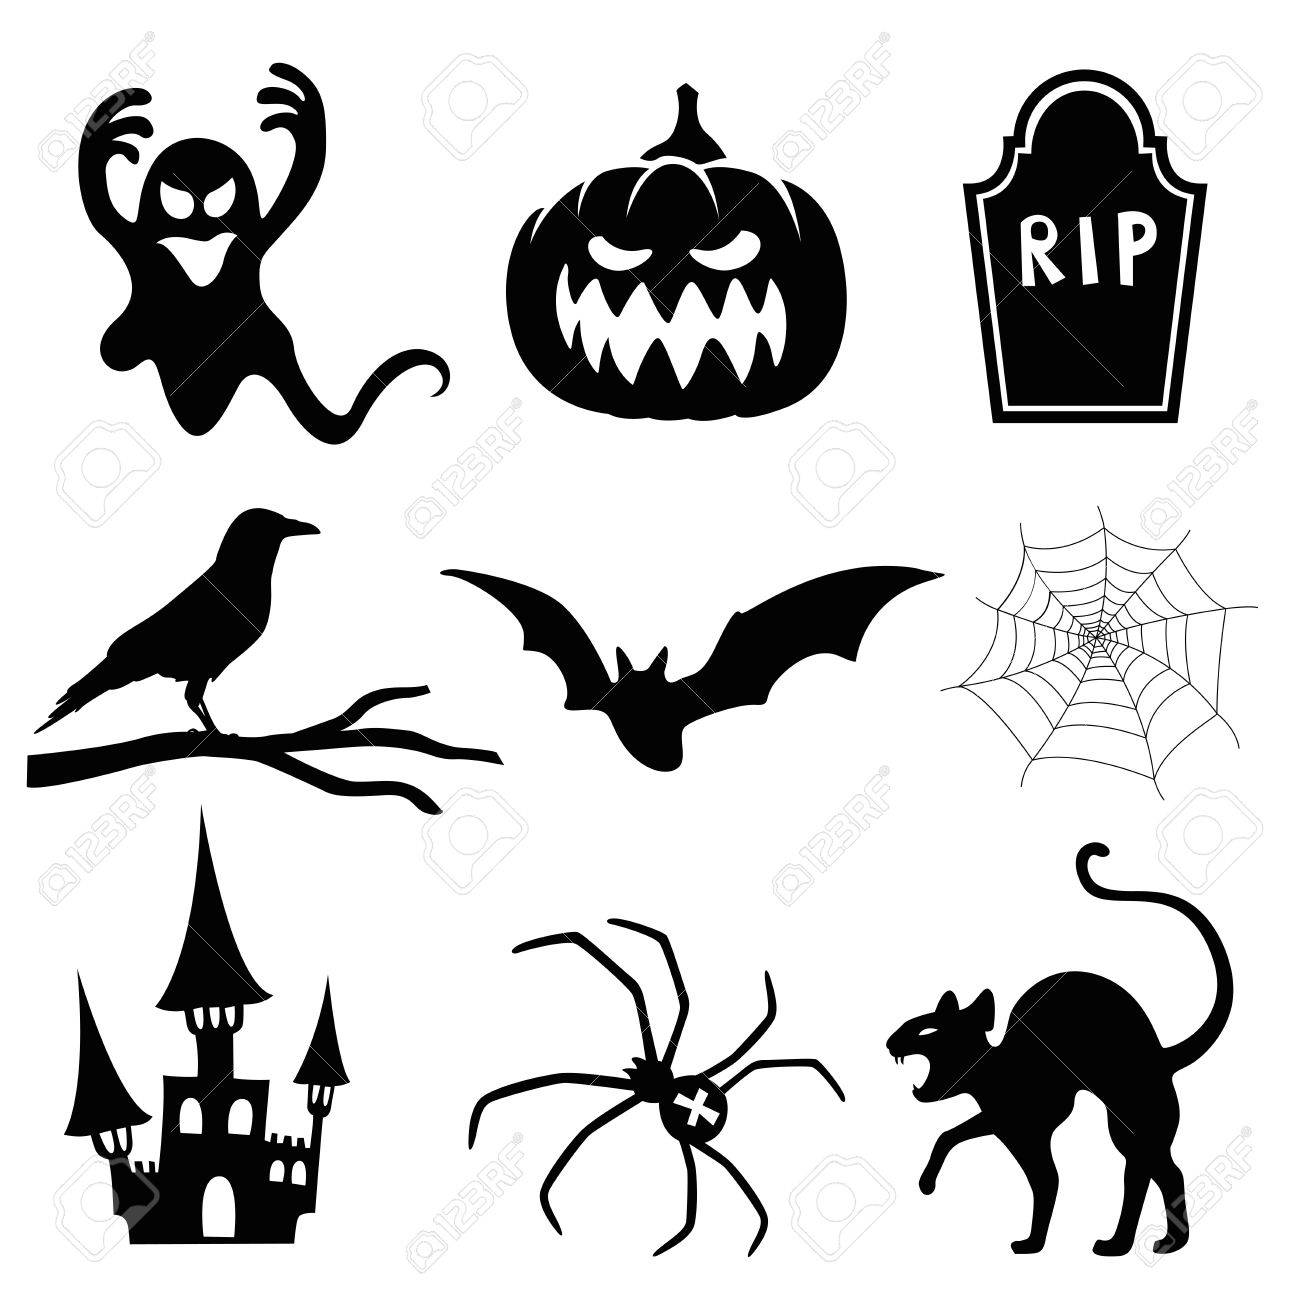 Halloween Silhouette Set Royalty Free Cliparts, Vectors, And Stock ...